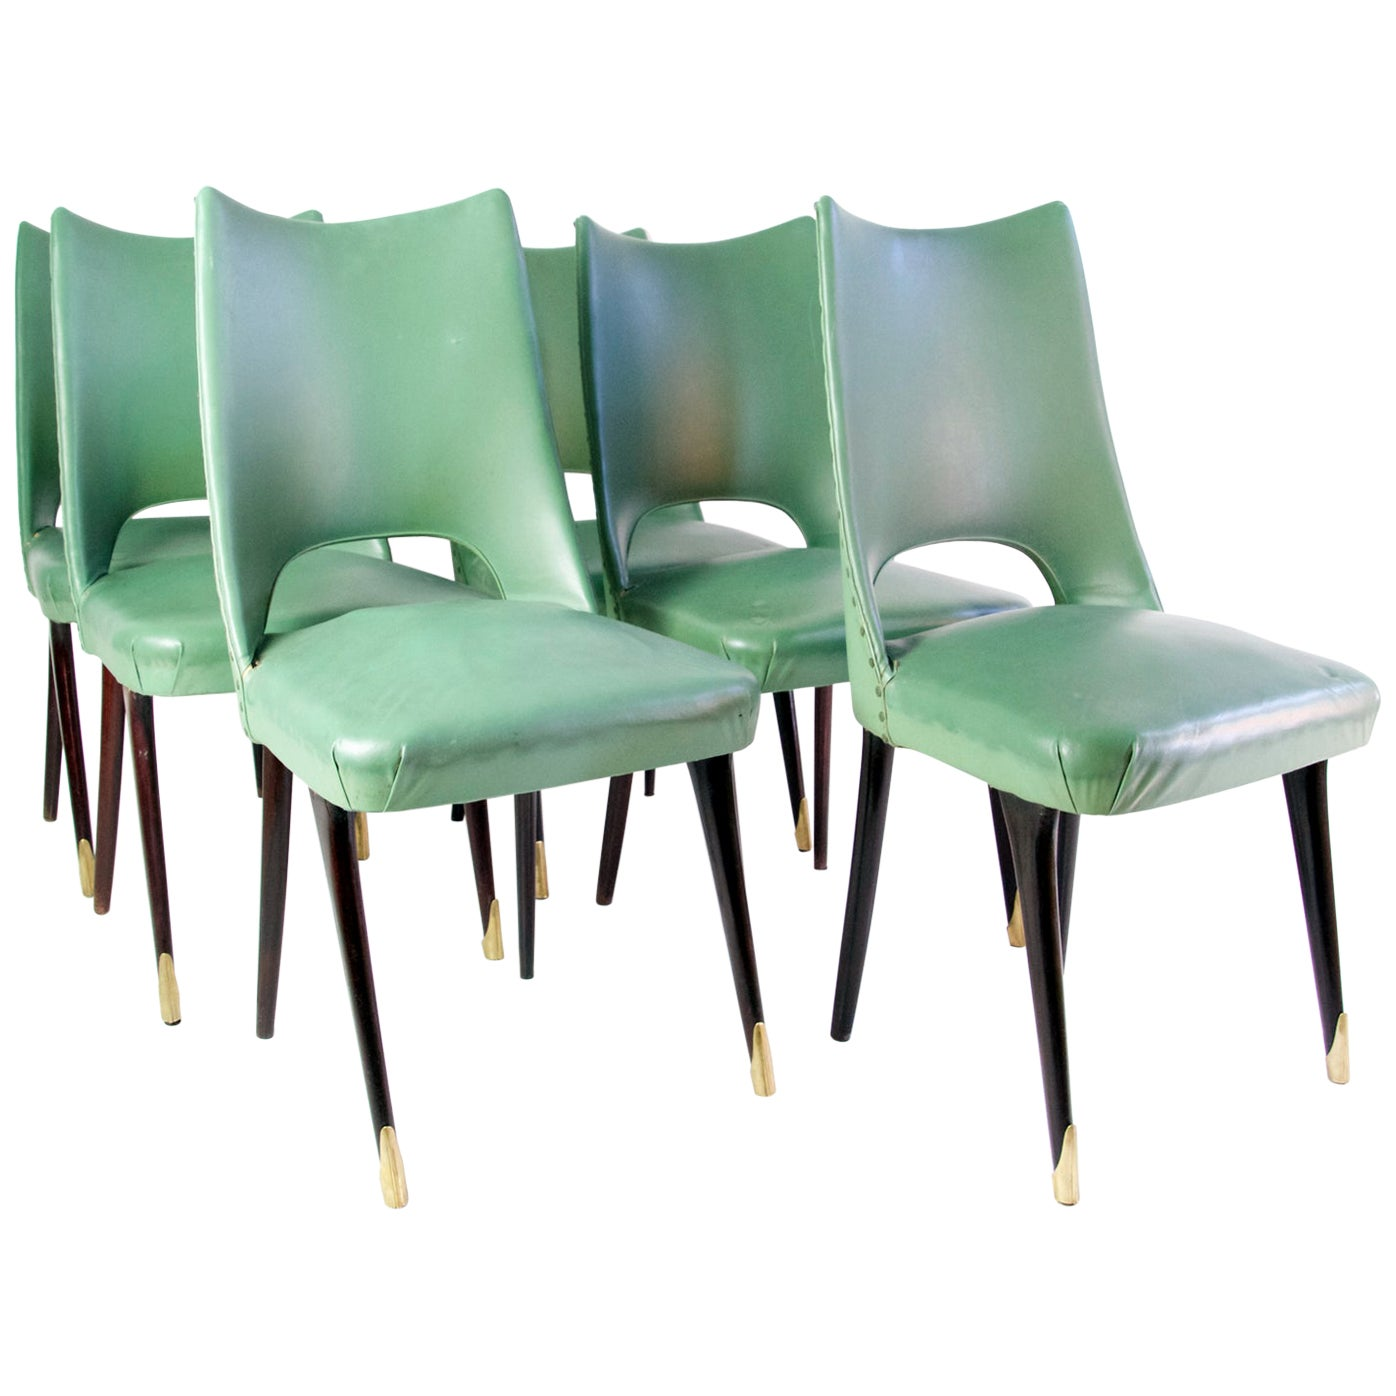 Six Midcentury Italian Dining Chairs